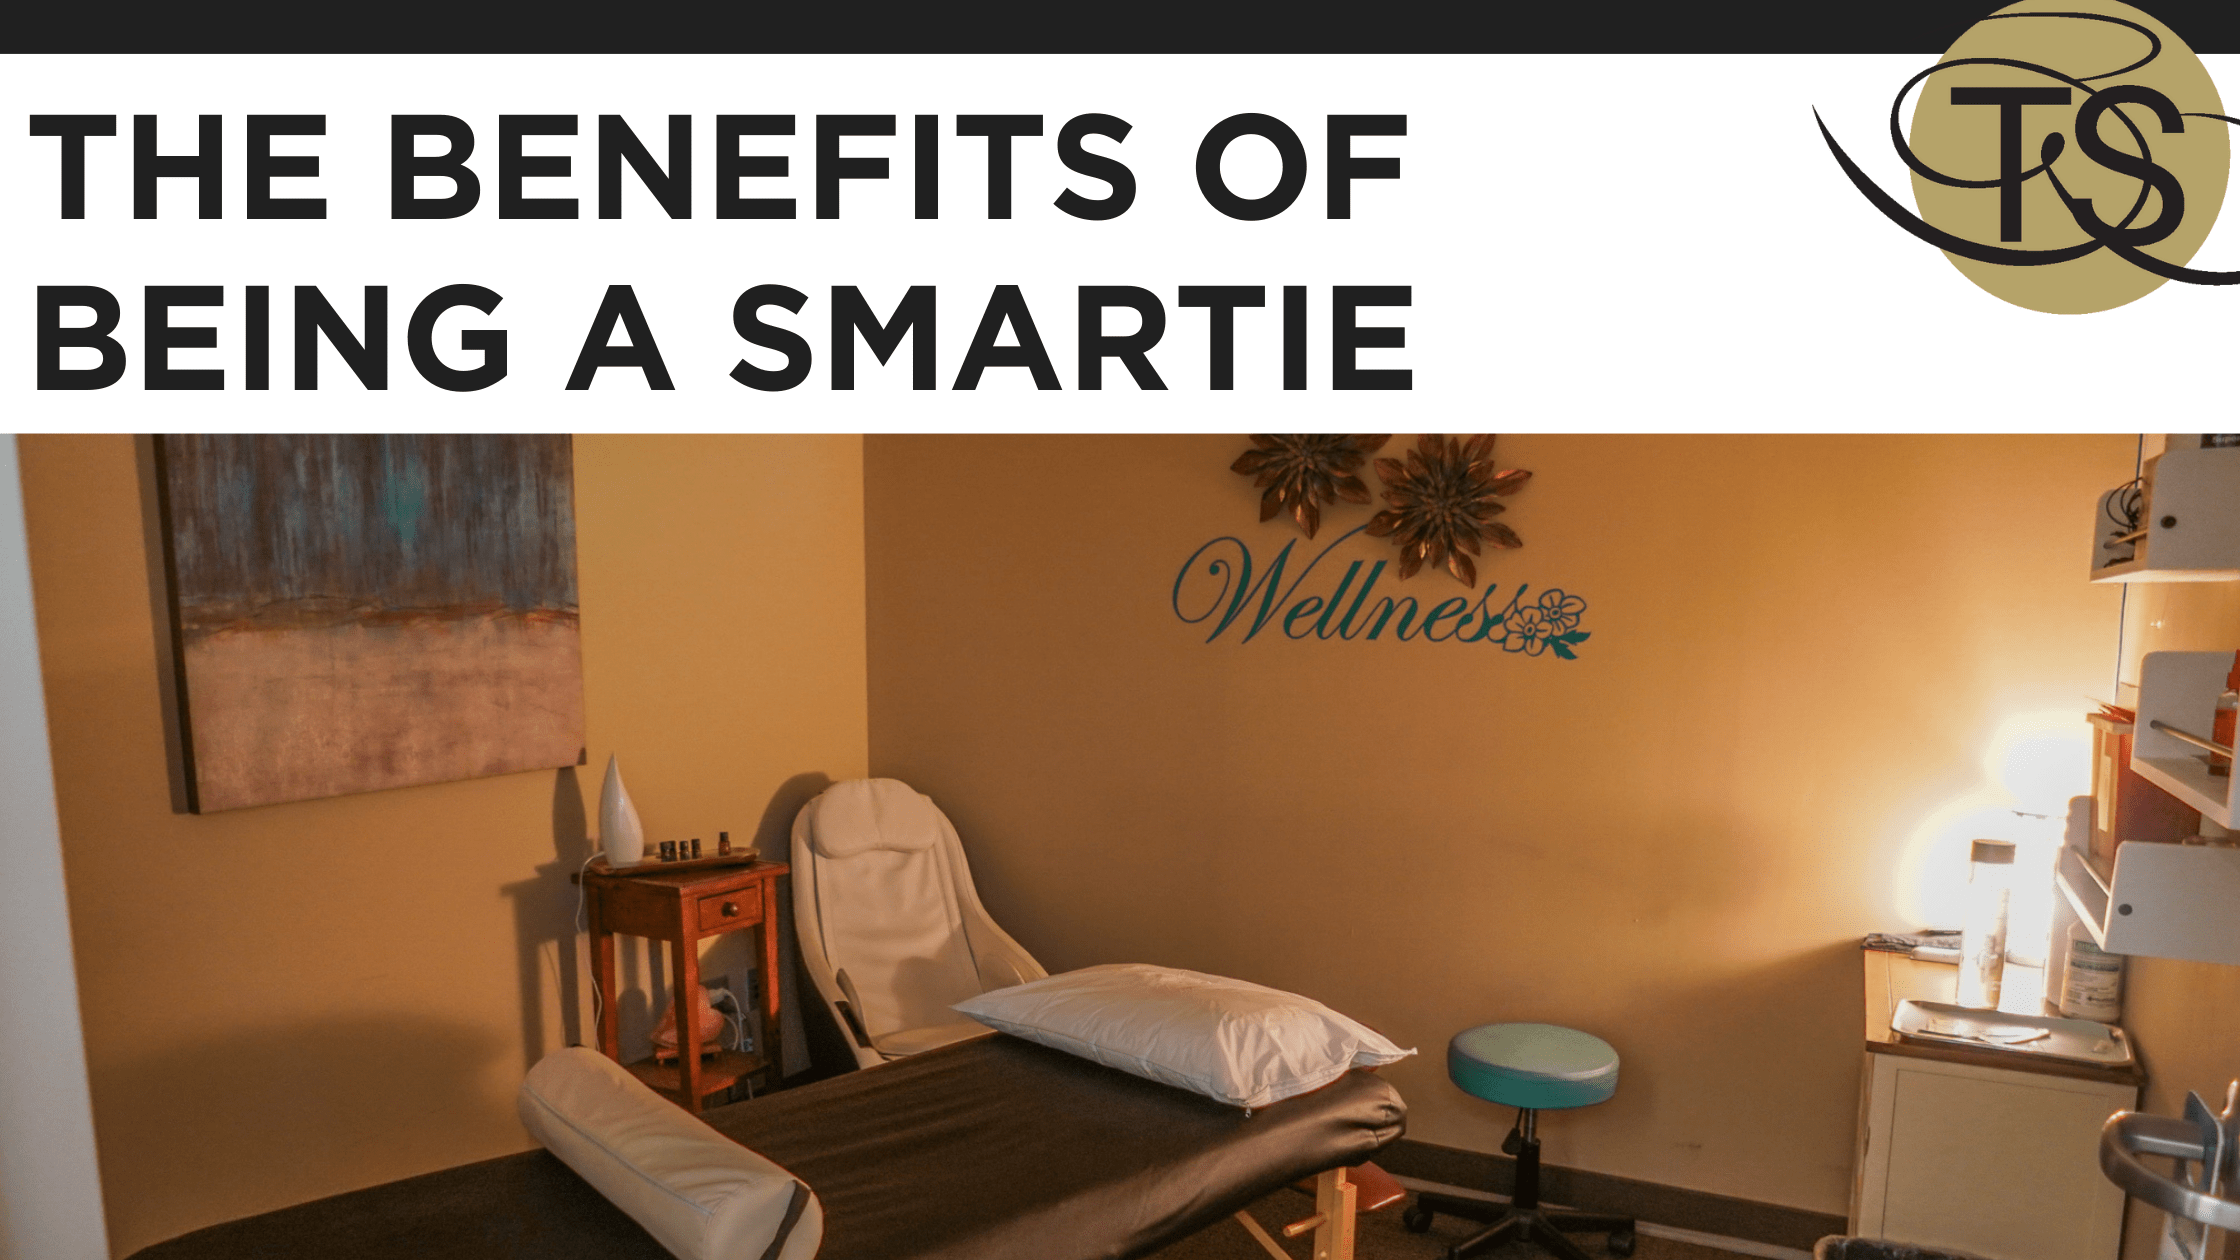 The Benefits of Being a Smartie